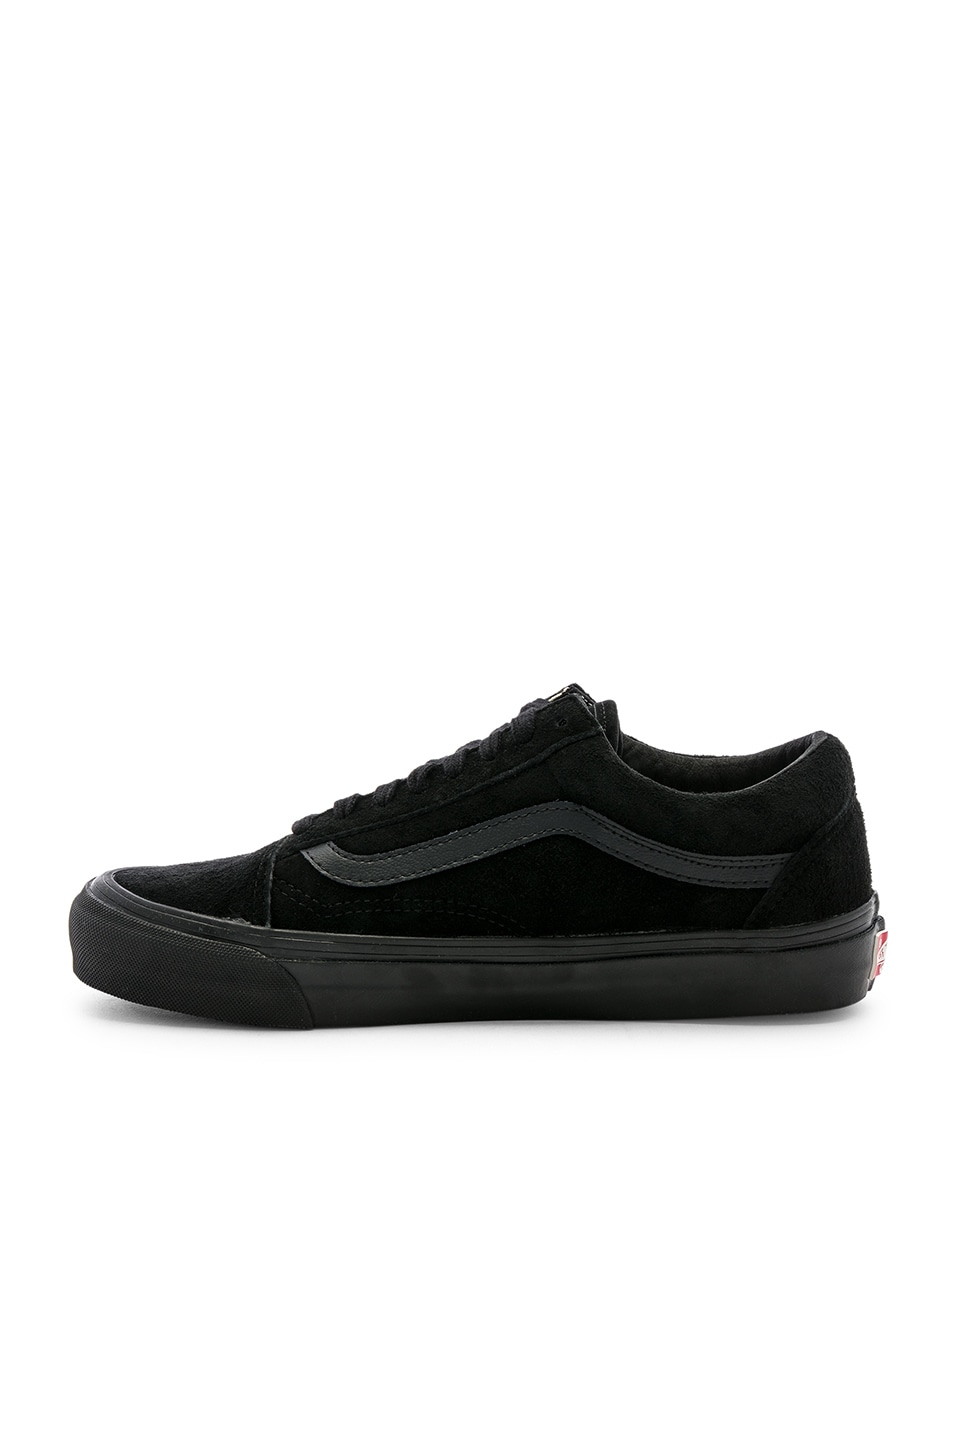 Image 5 of Vans Vault OG Old Skool LX in Black